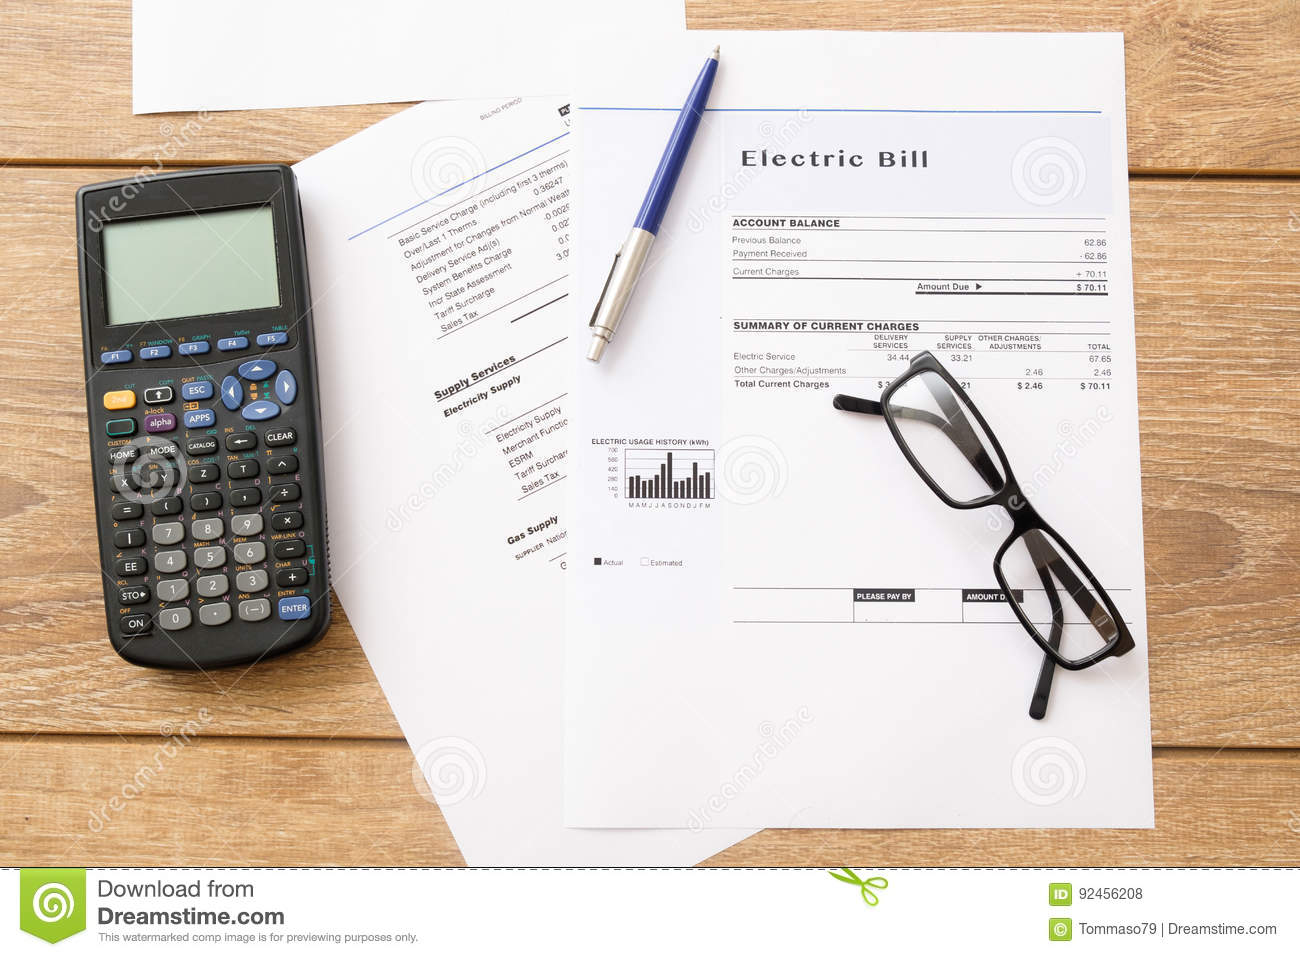 Electricity bill charges paper form on a table